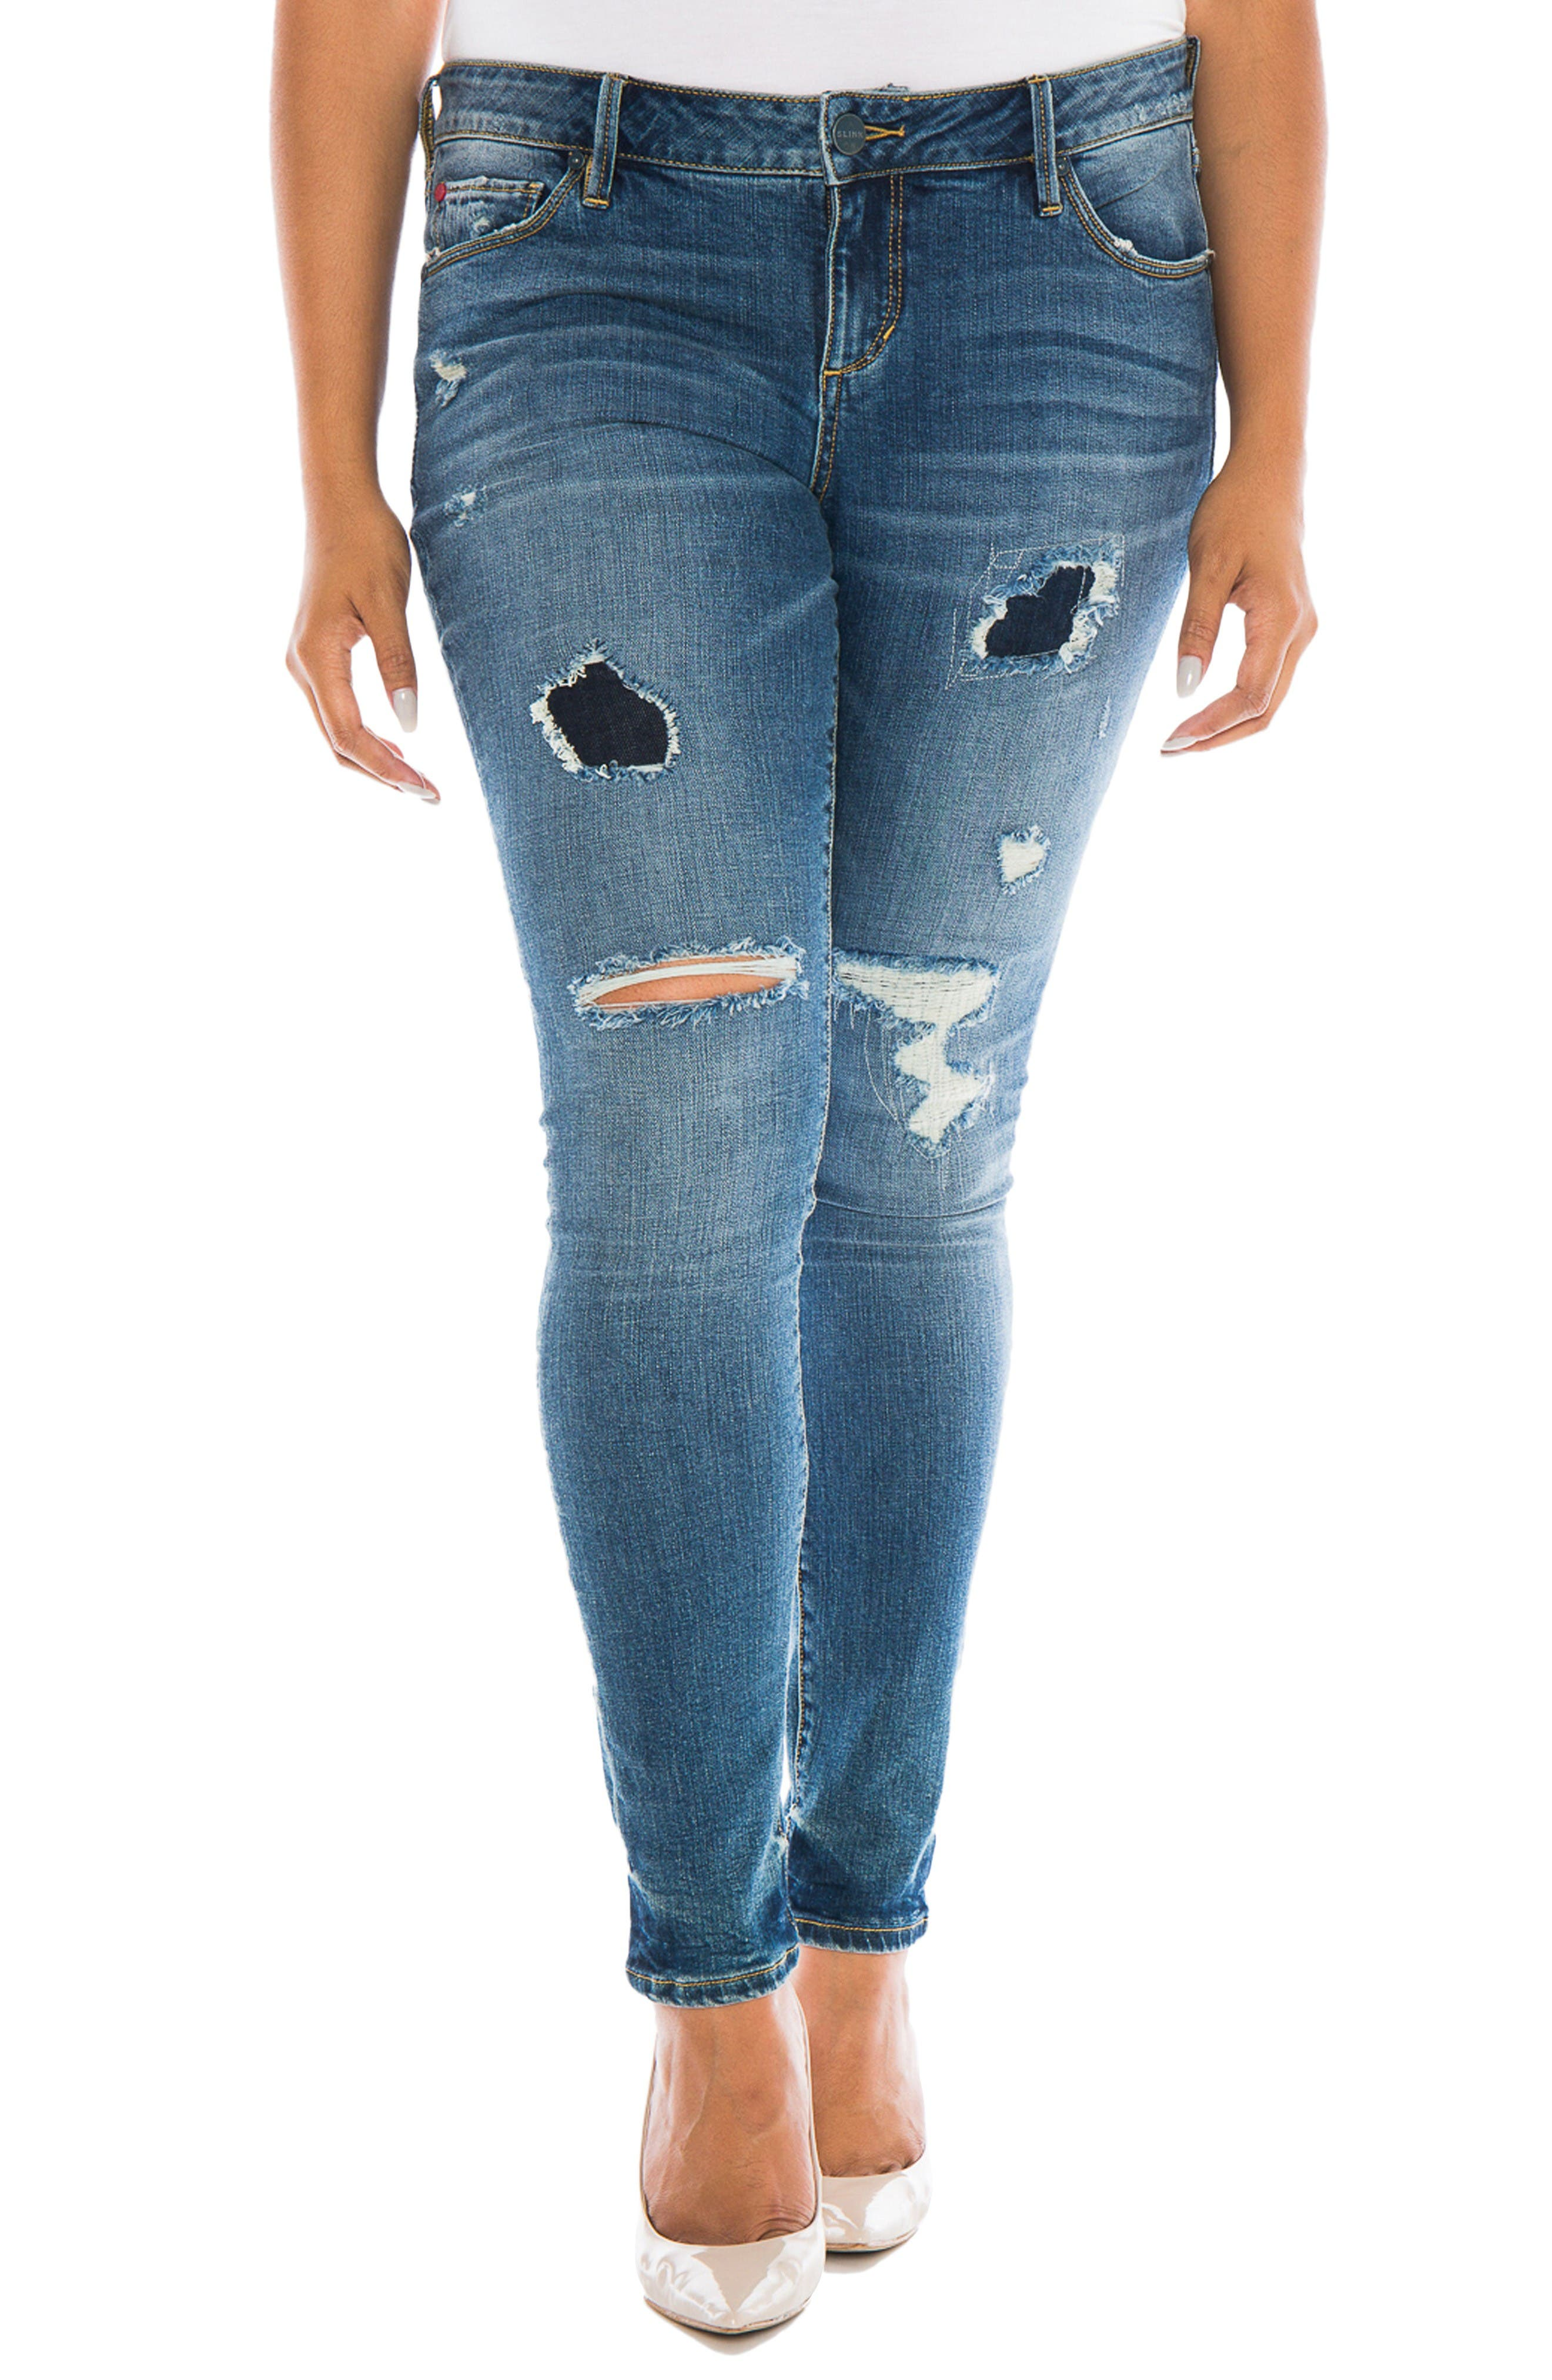 Main Image - SLINK Jeans Ripped Skinny Jeans (Joby) (Plus Size)